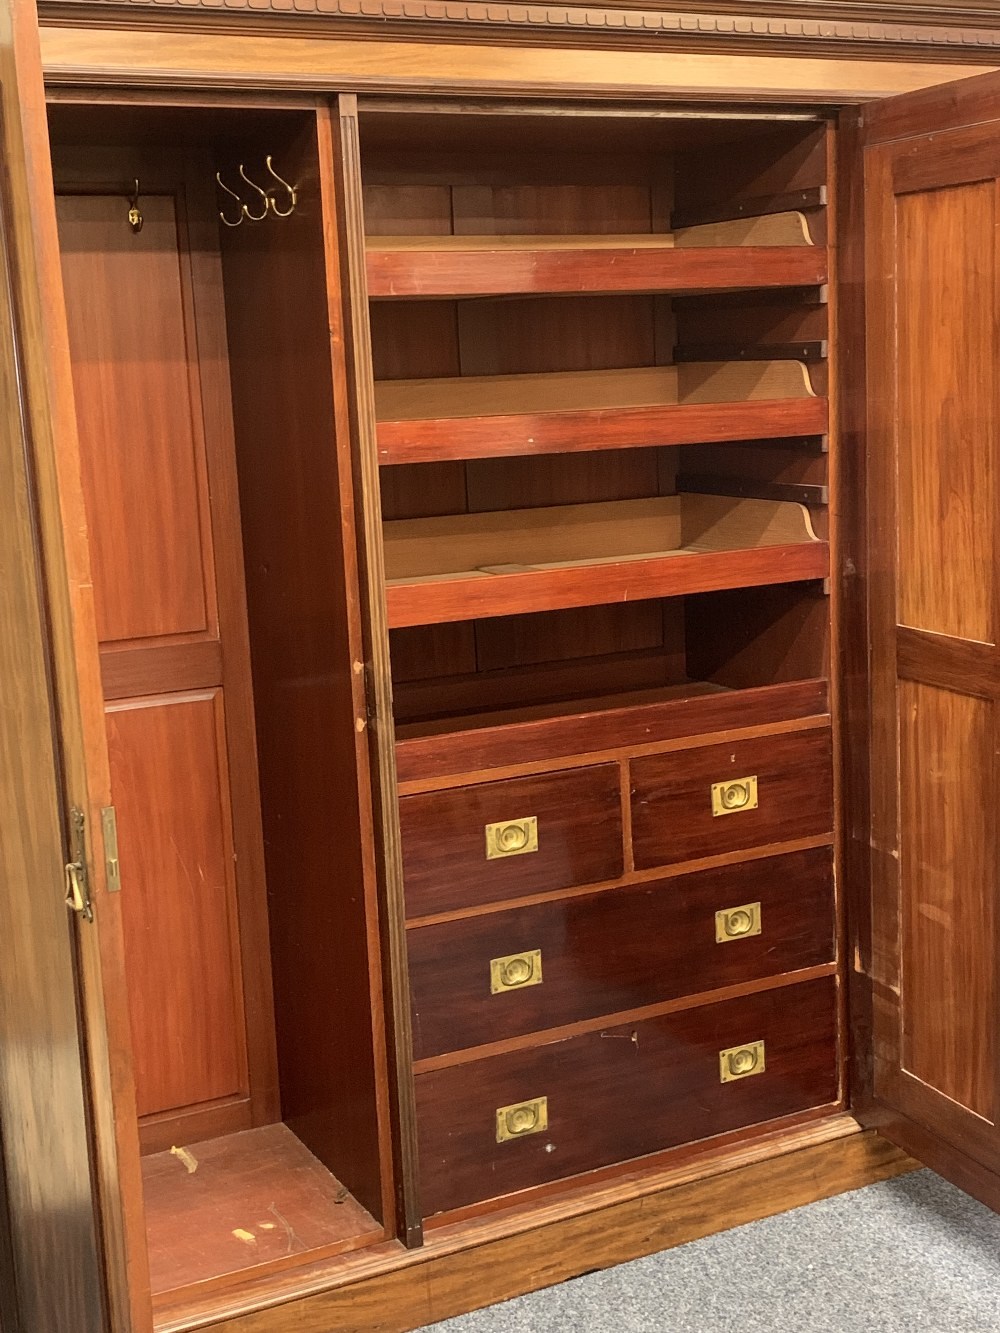 CIRCA 1900 MAHOGANY TRIPLE WARDROBE with dentil carved cornice and large central mirrored door - Image 2 of 6